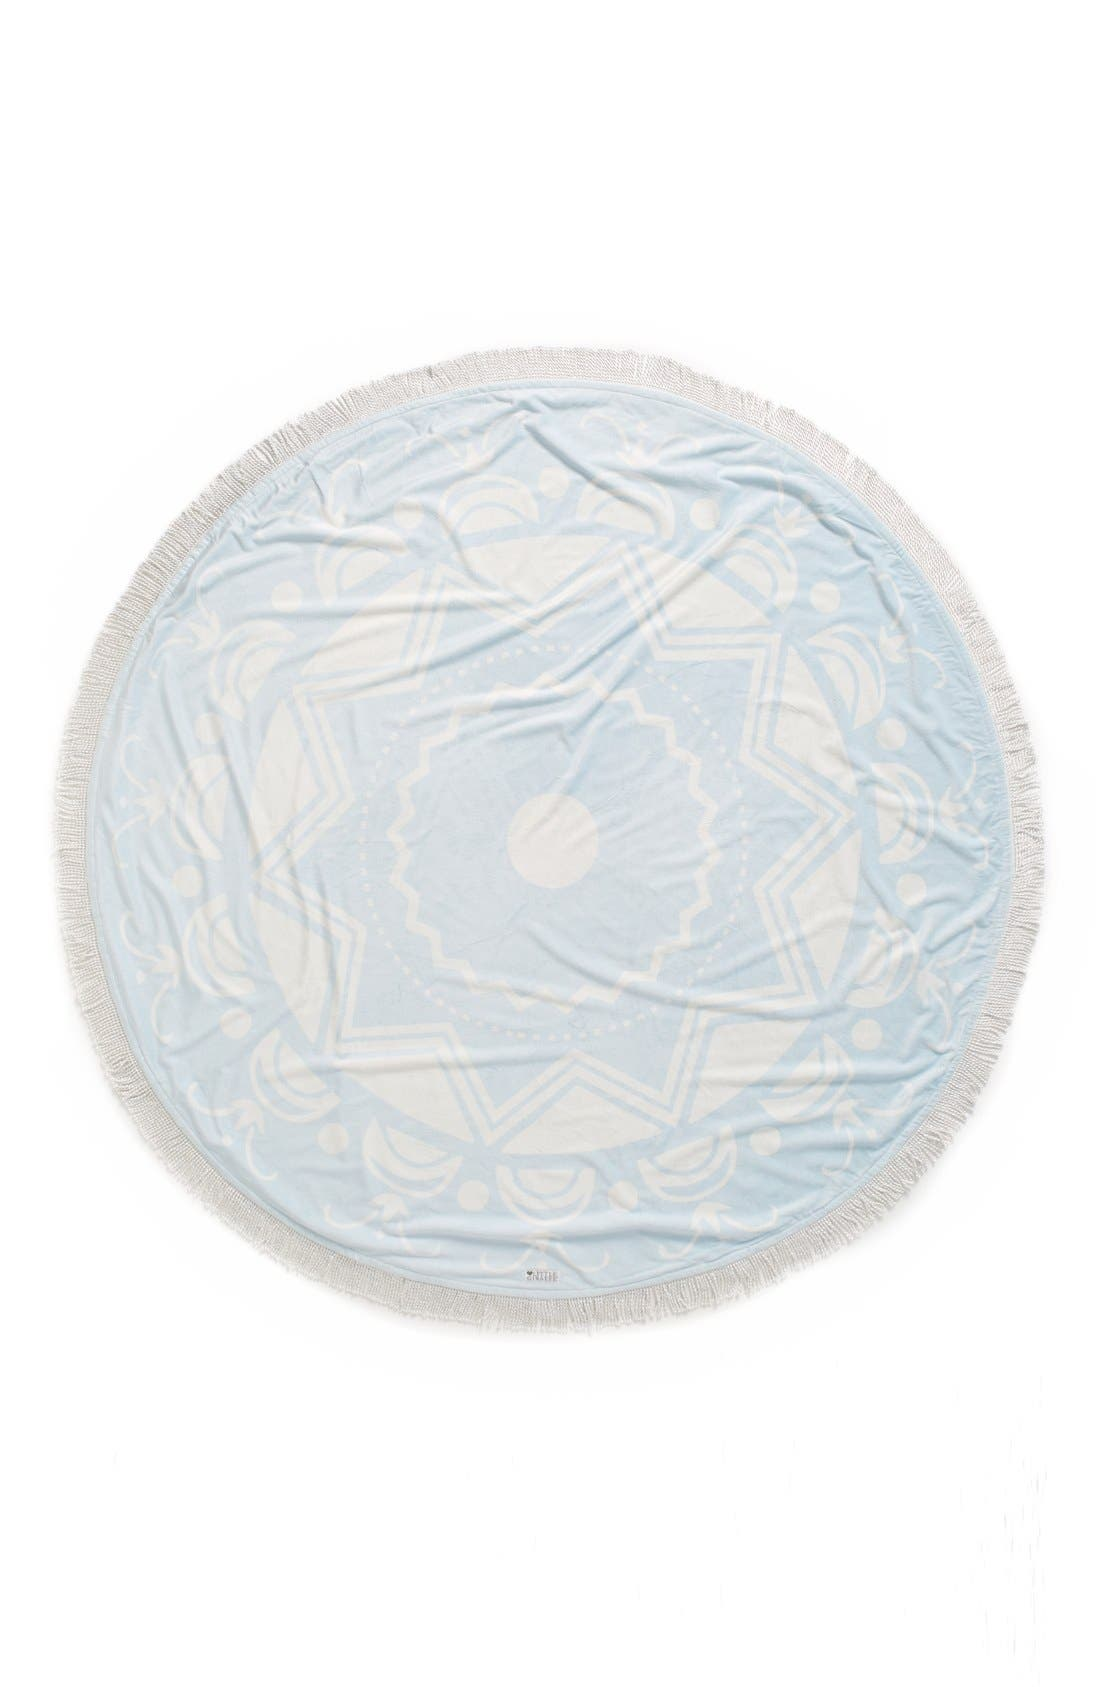 Bliss<sup>™</sup> Round Blanket,                             Alternate thumbnail 5, color,